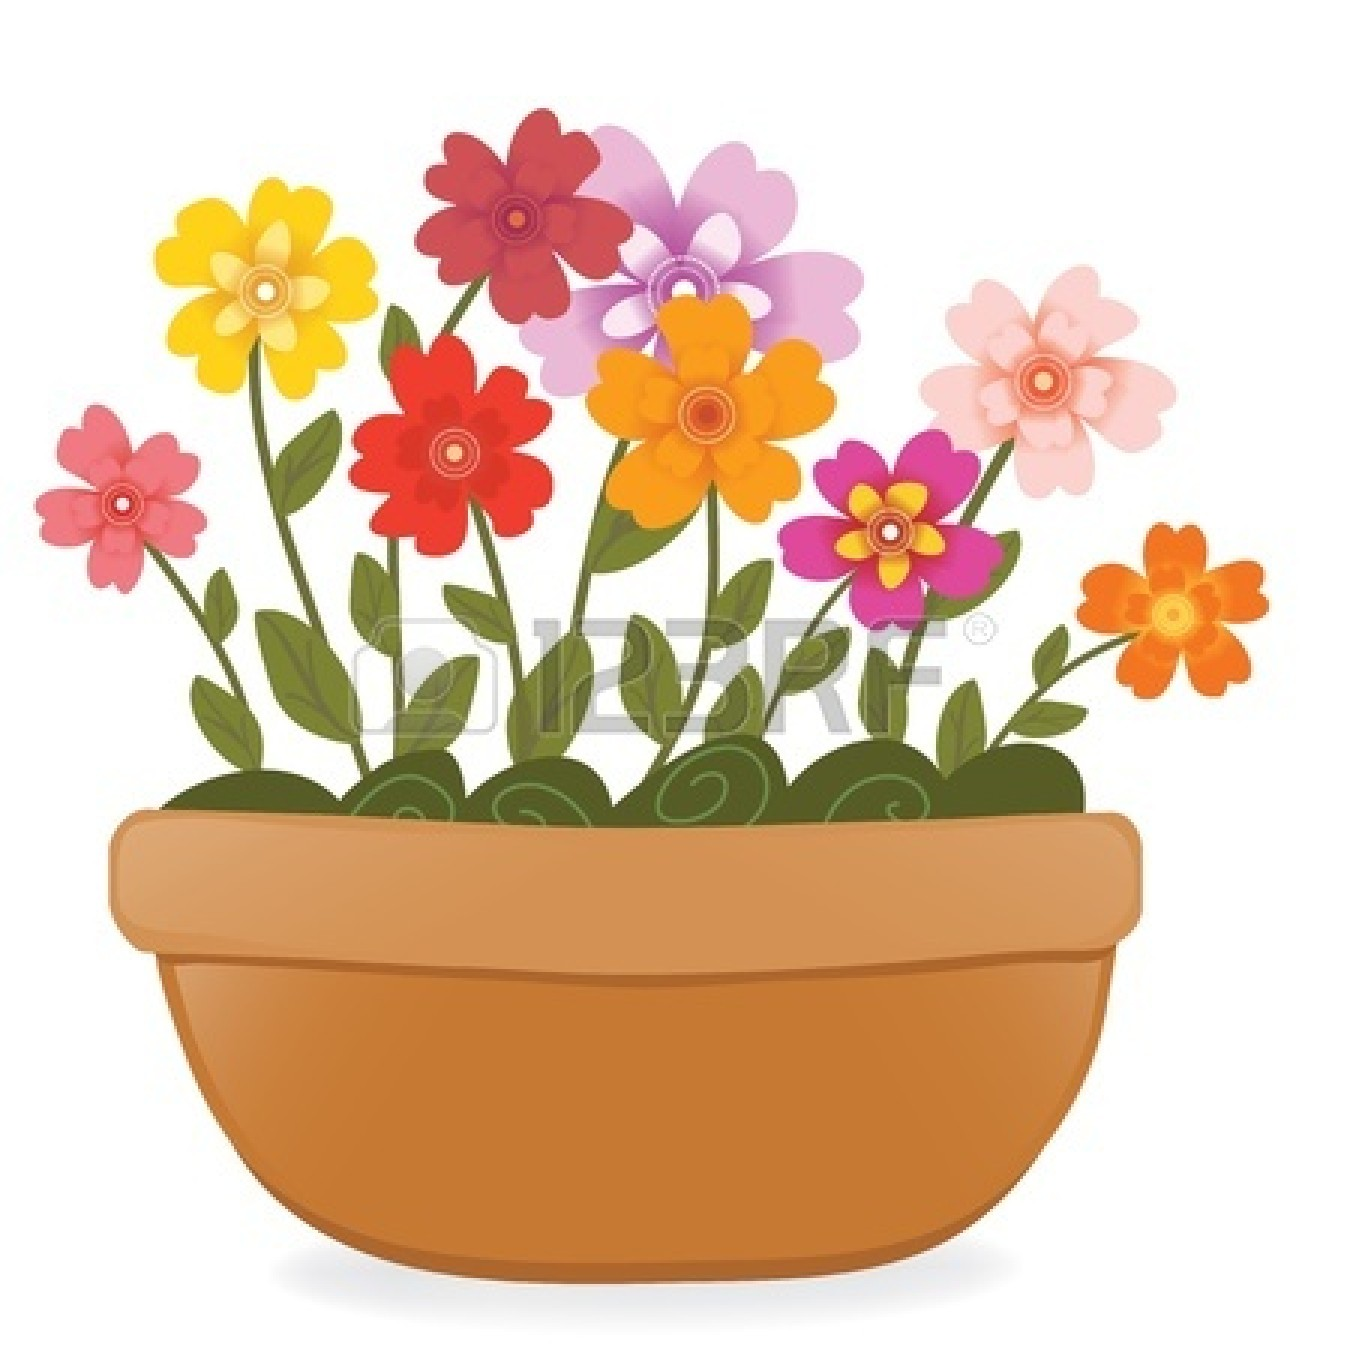 Potted Flower Clipart 18688688 Flower Pot Jpg